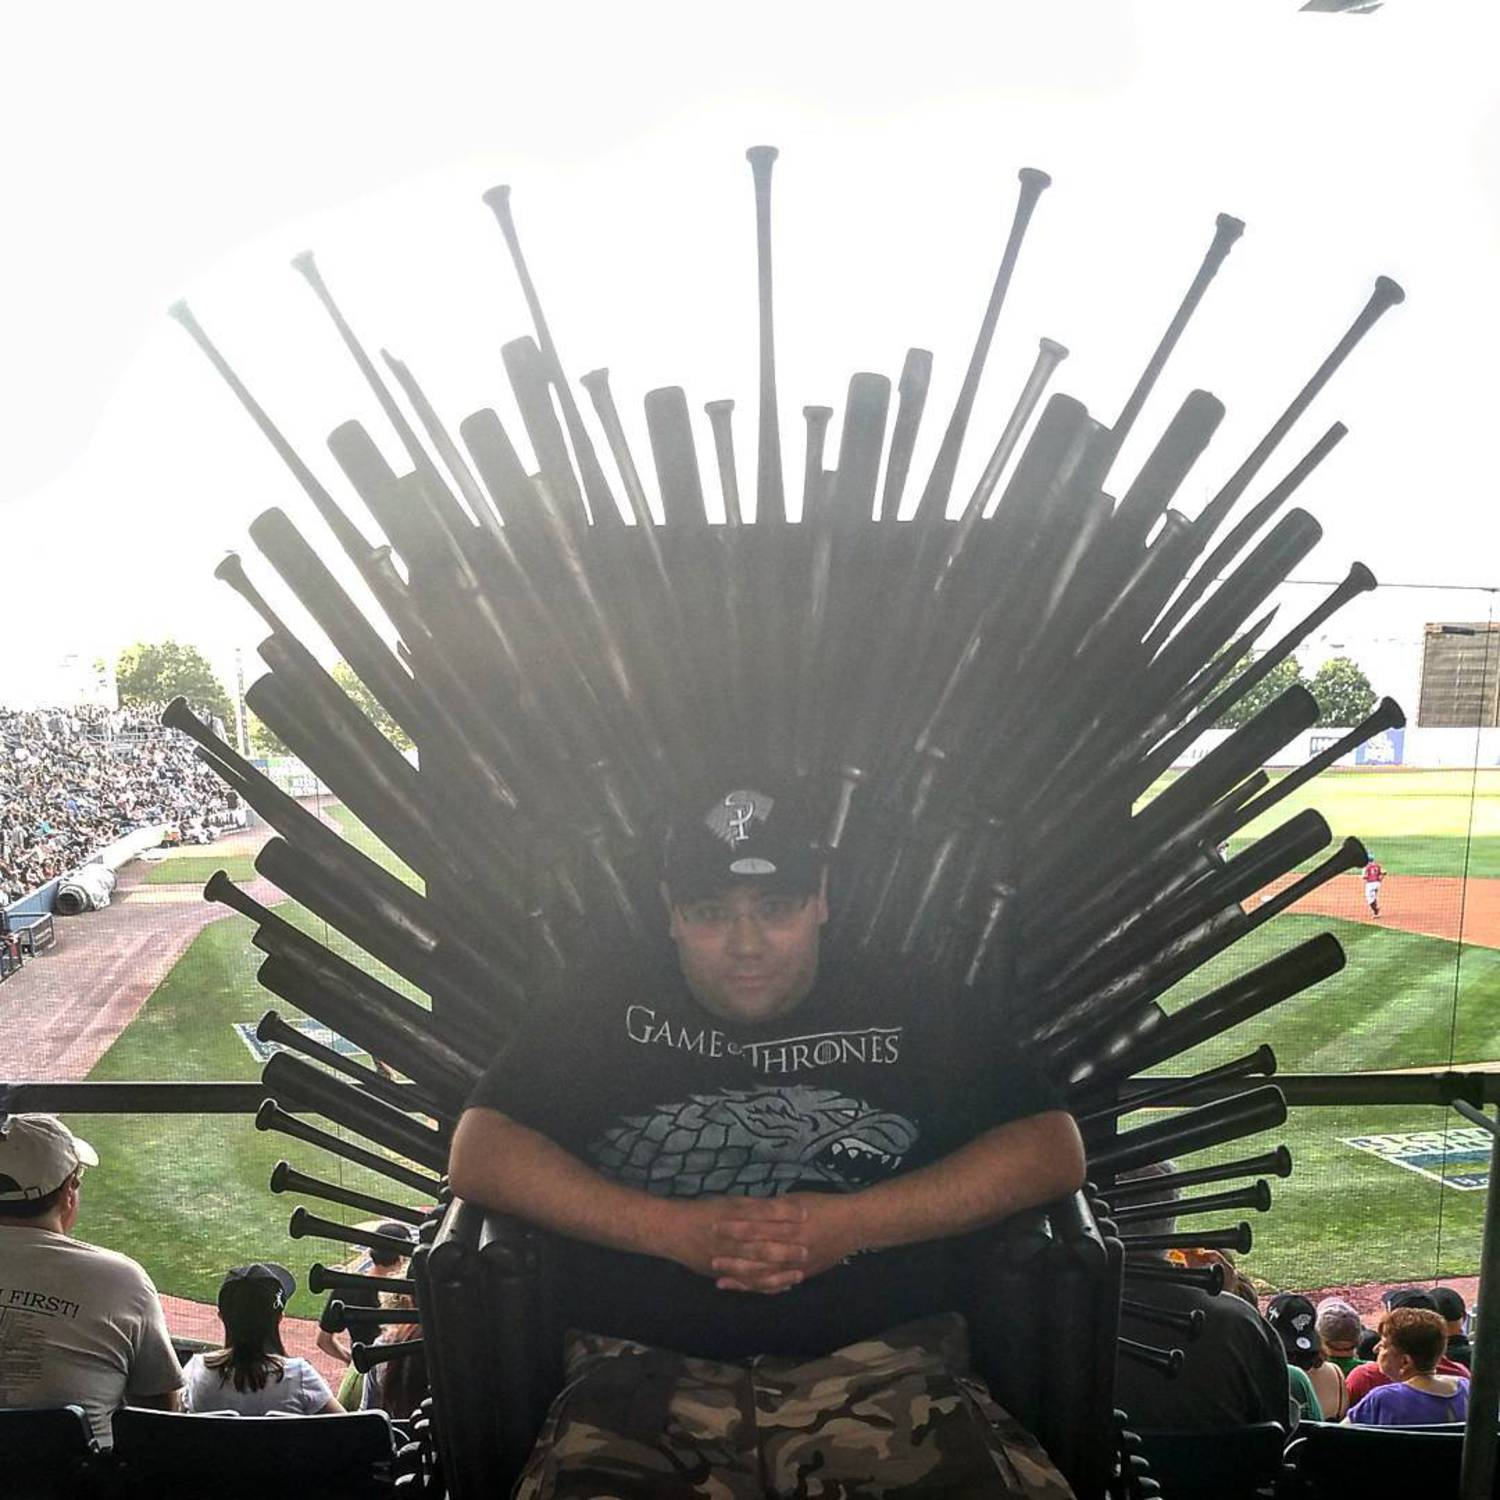 #GoT #statenislandyankees  #Gameofthrones #ironthrone